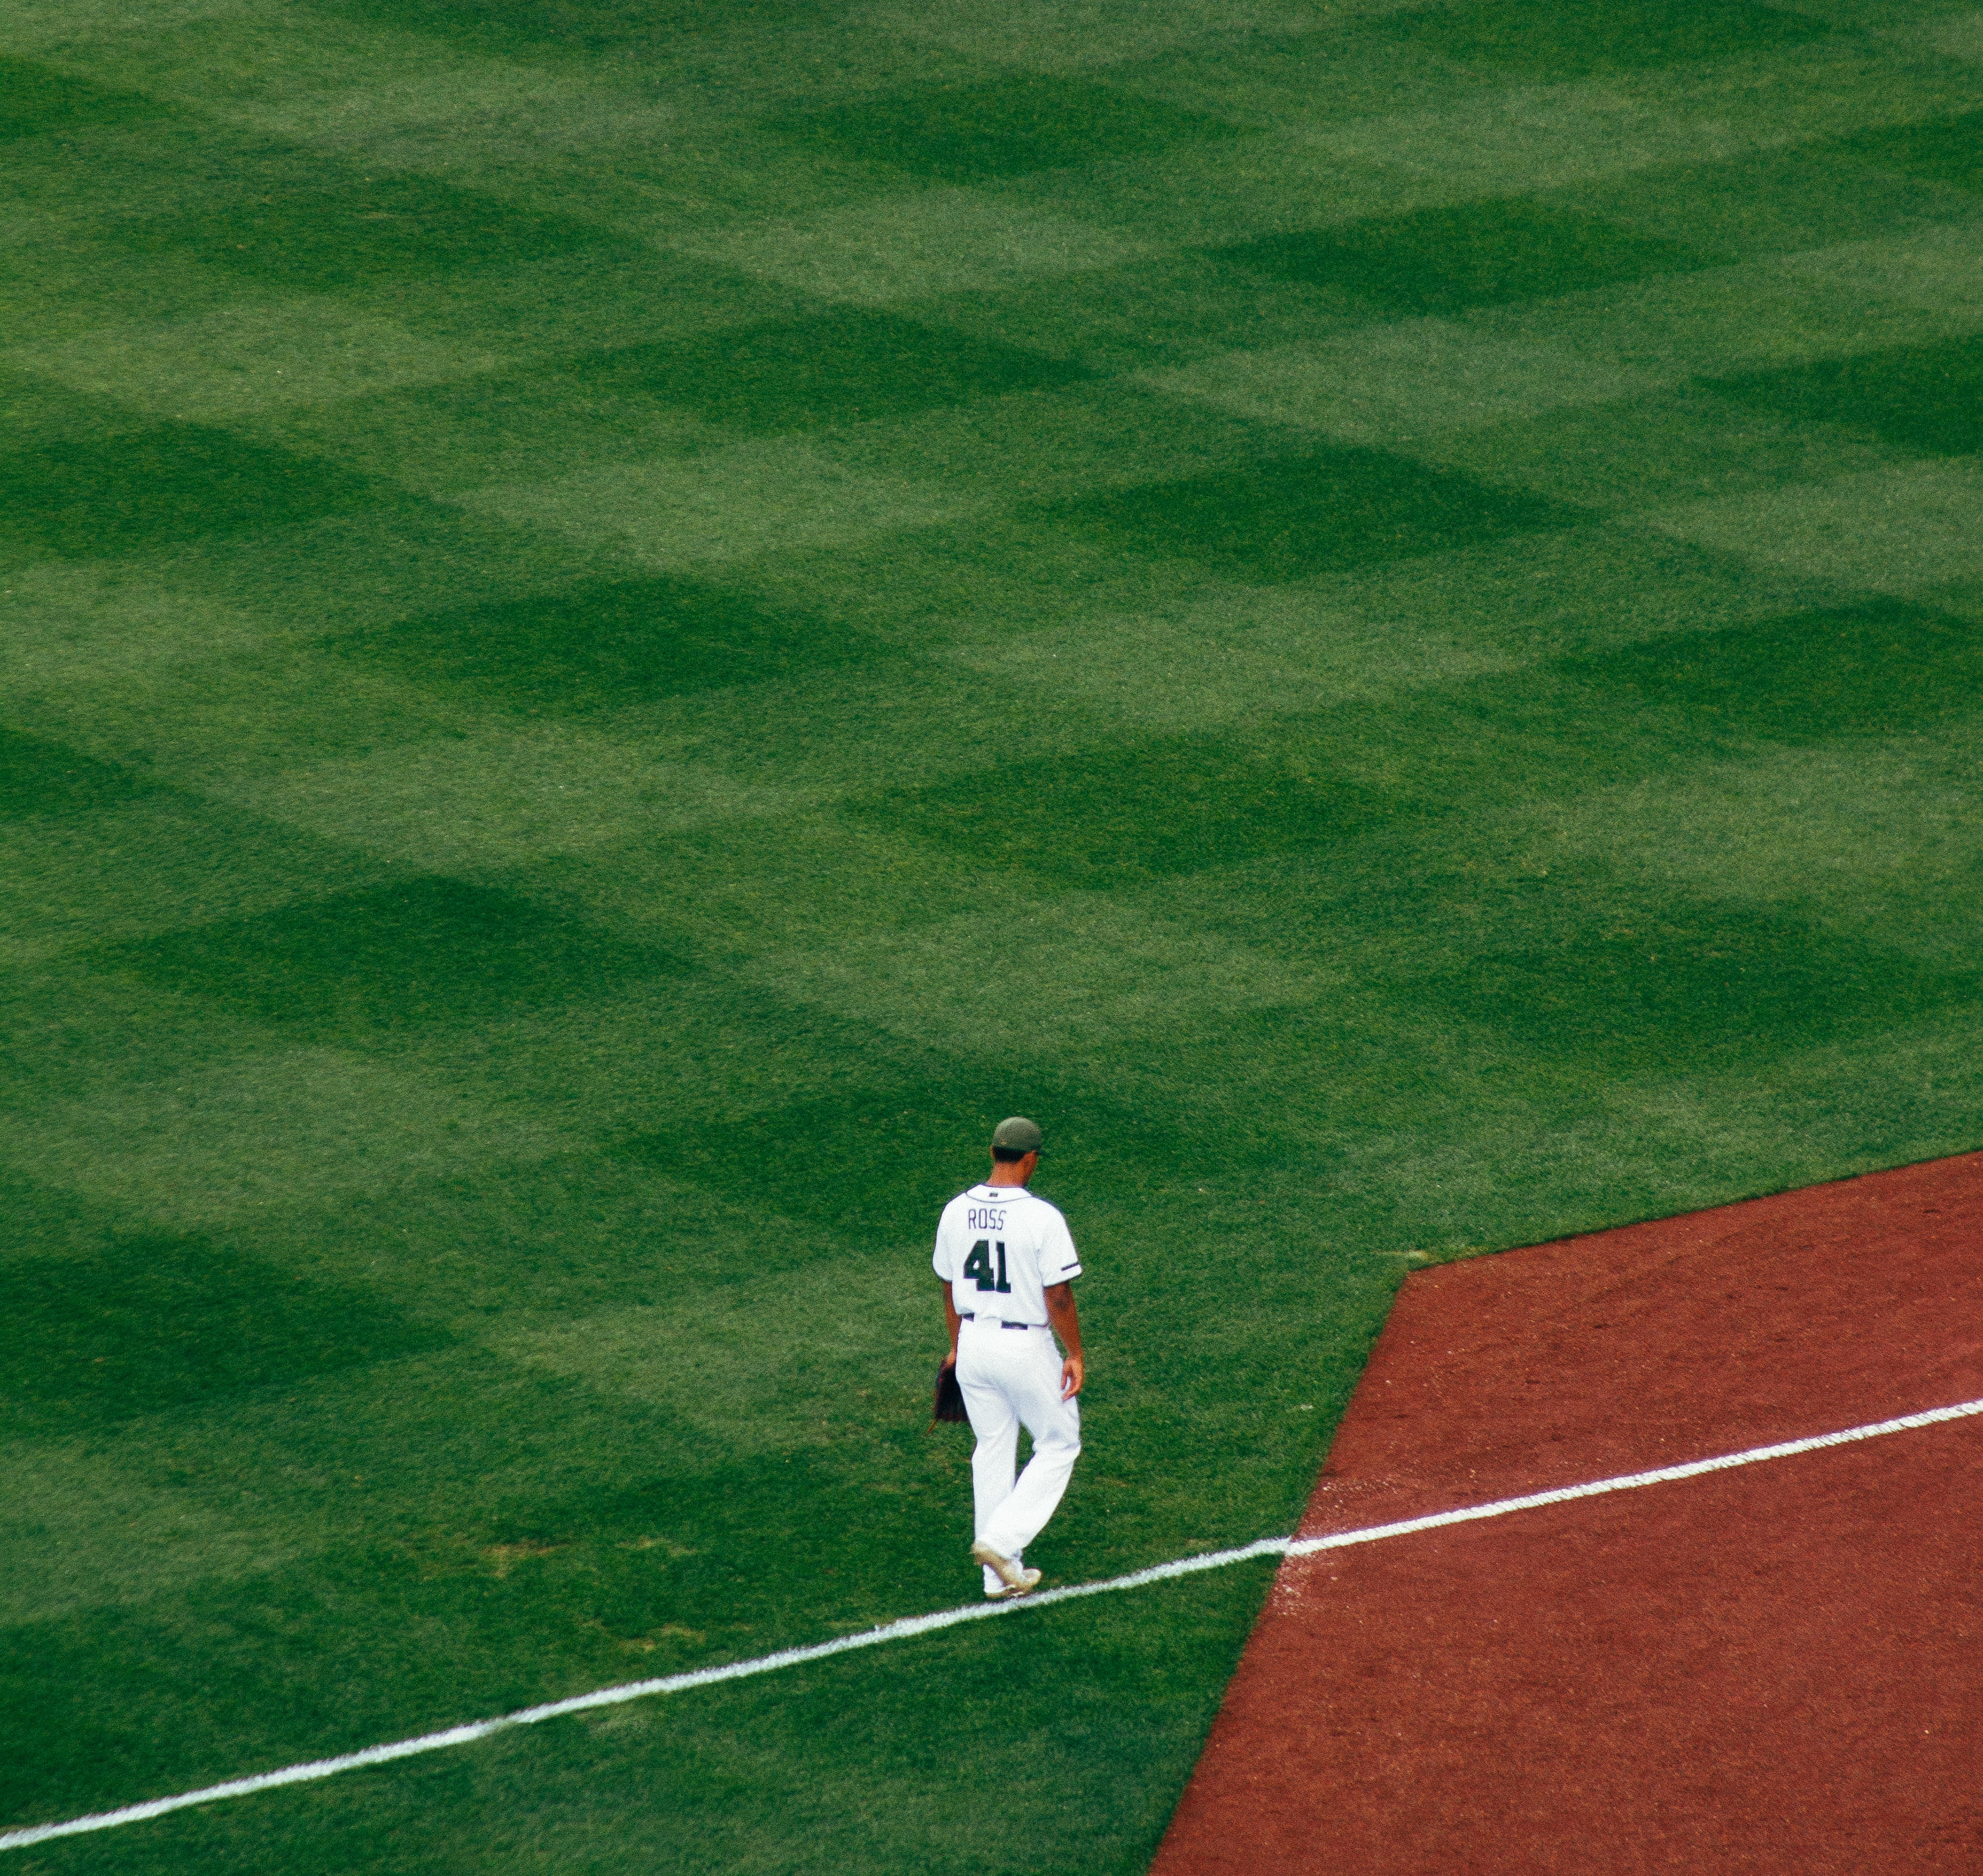 baseball player standing on field steps on white line at daytime